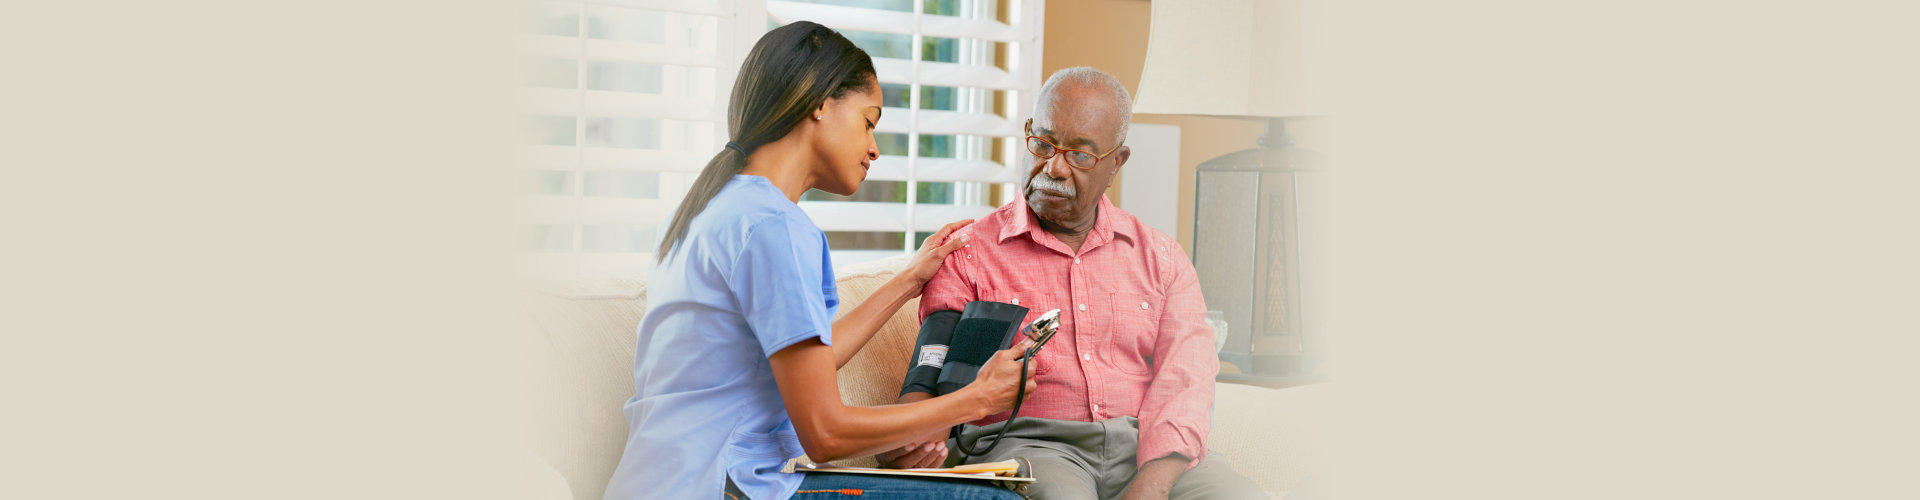 caregiver checking the health of her elderly man